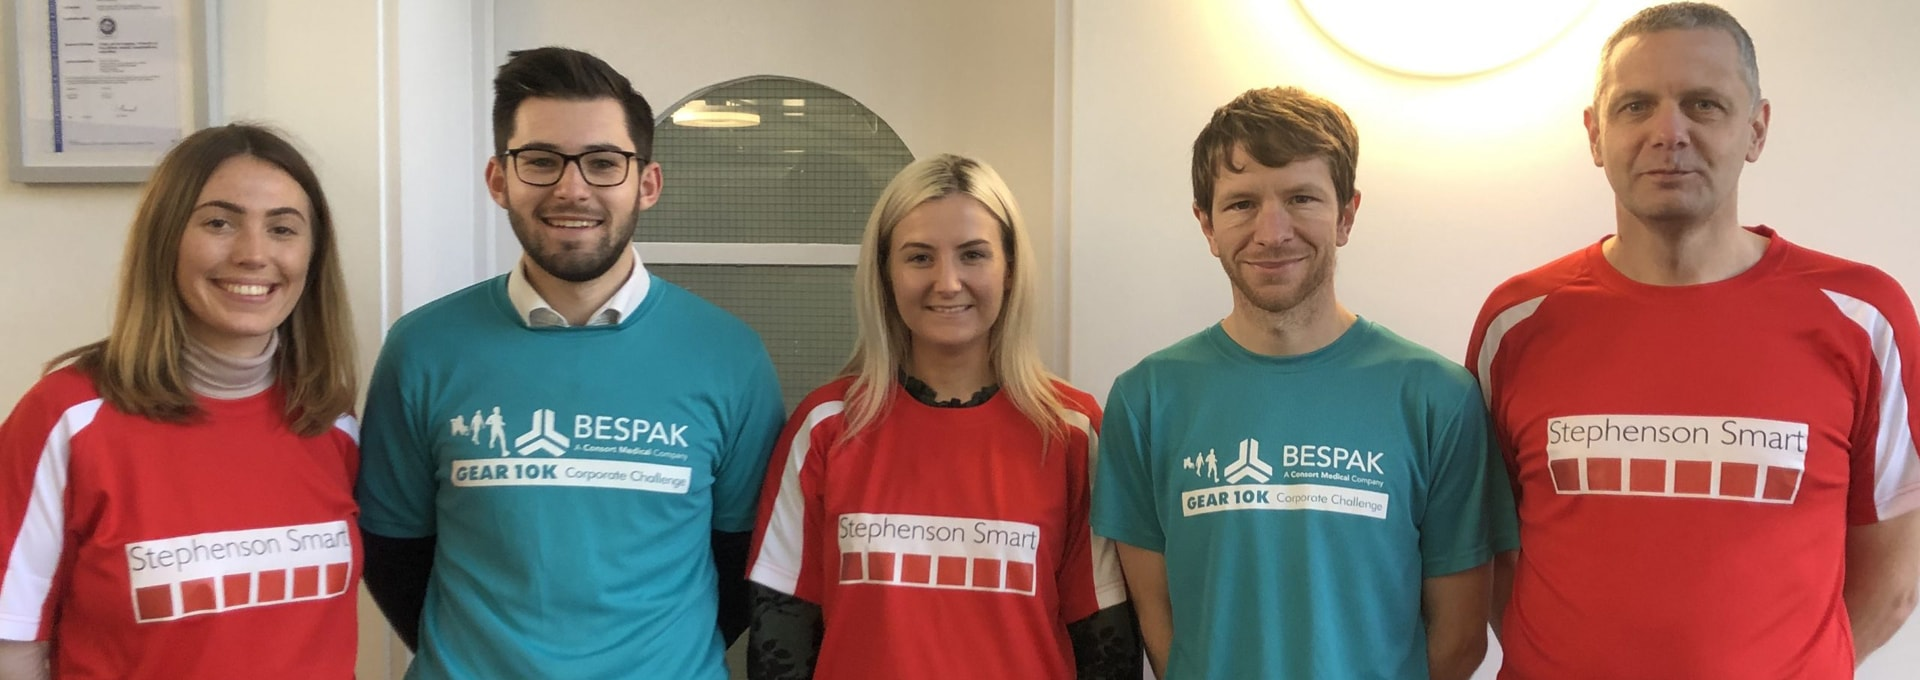 The group of budding athletes from the King's Lynn, Fakenham and Great Yarmouth offices won the Corporate Challenge during last year's GEAR 10K, which takes place in King's Lynn.